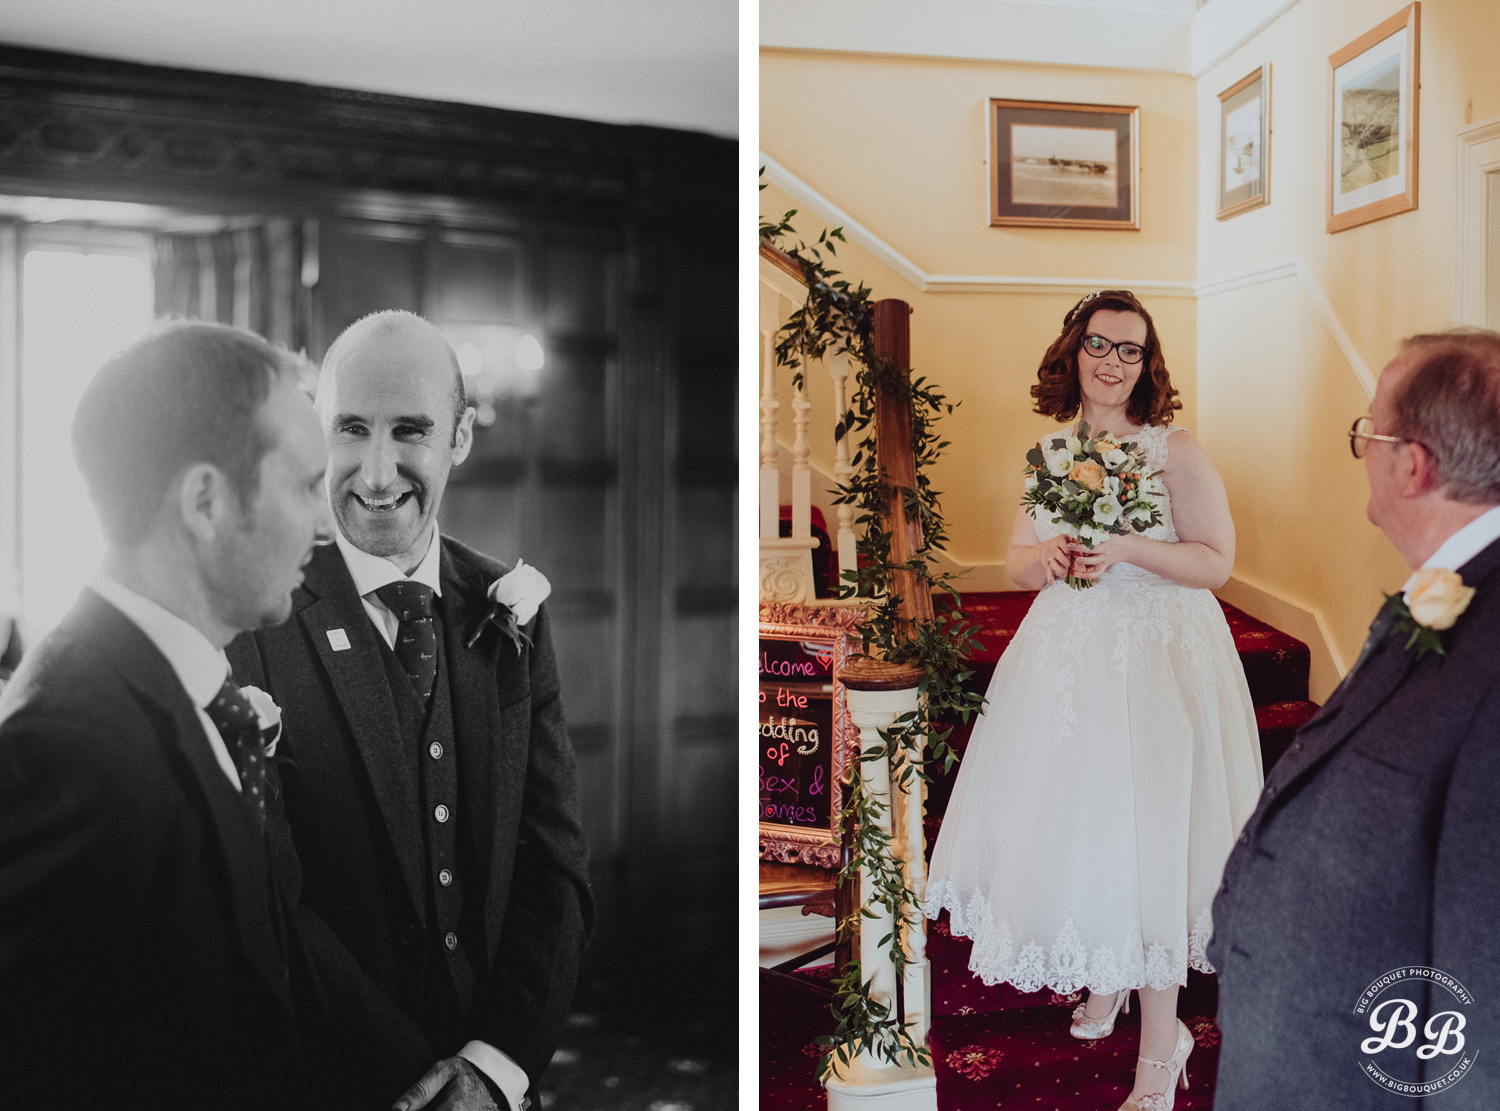 010-bjmortons_mar18_bb - Becky & James' Wedding at Mortons House Hotel - Wedding Photography